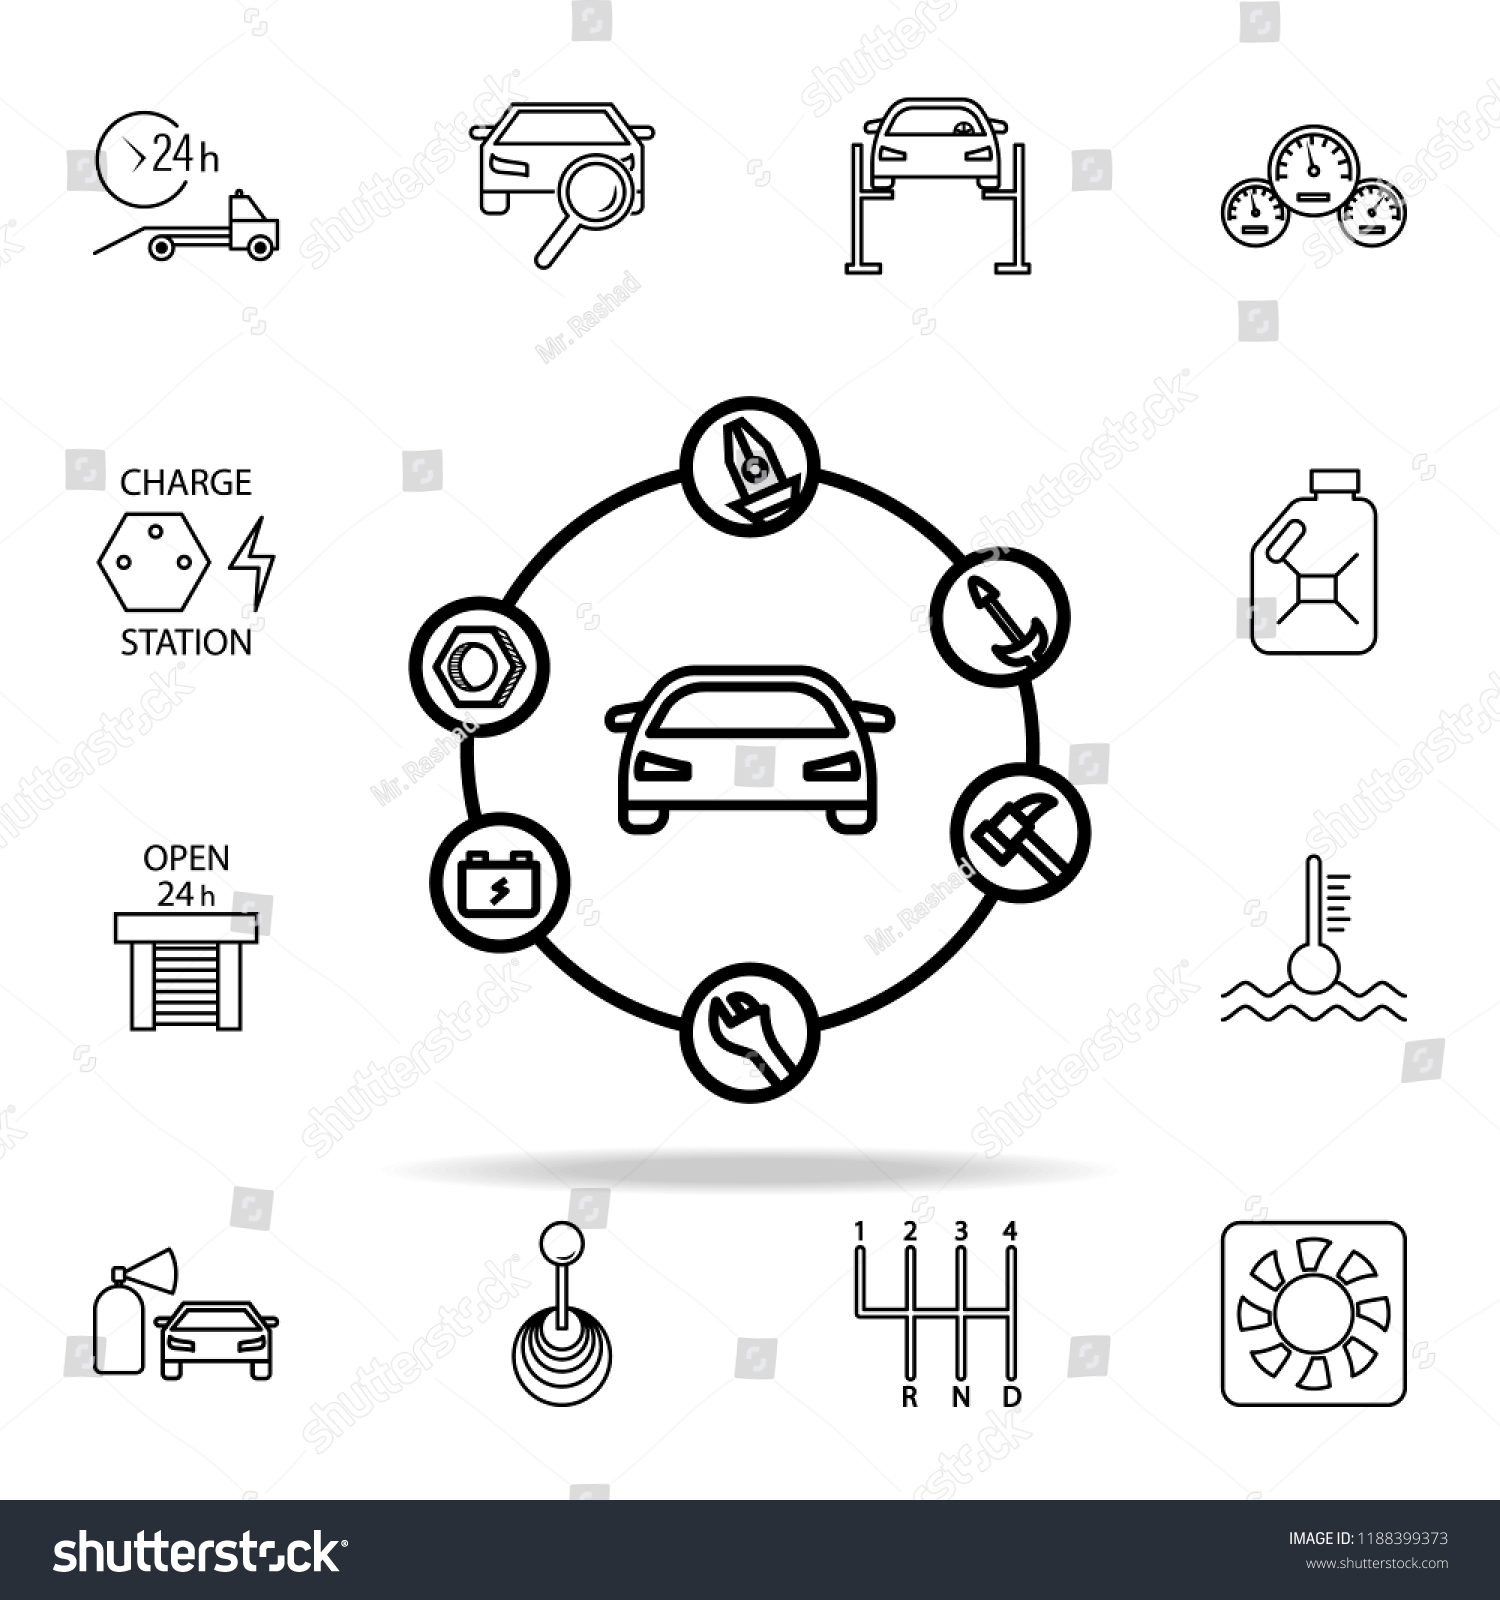 hight resolution of icon car diagram wiring diagram mega icon car diagram